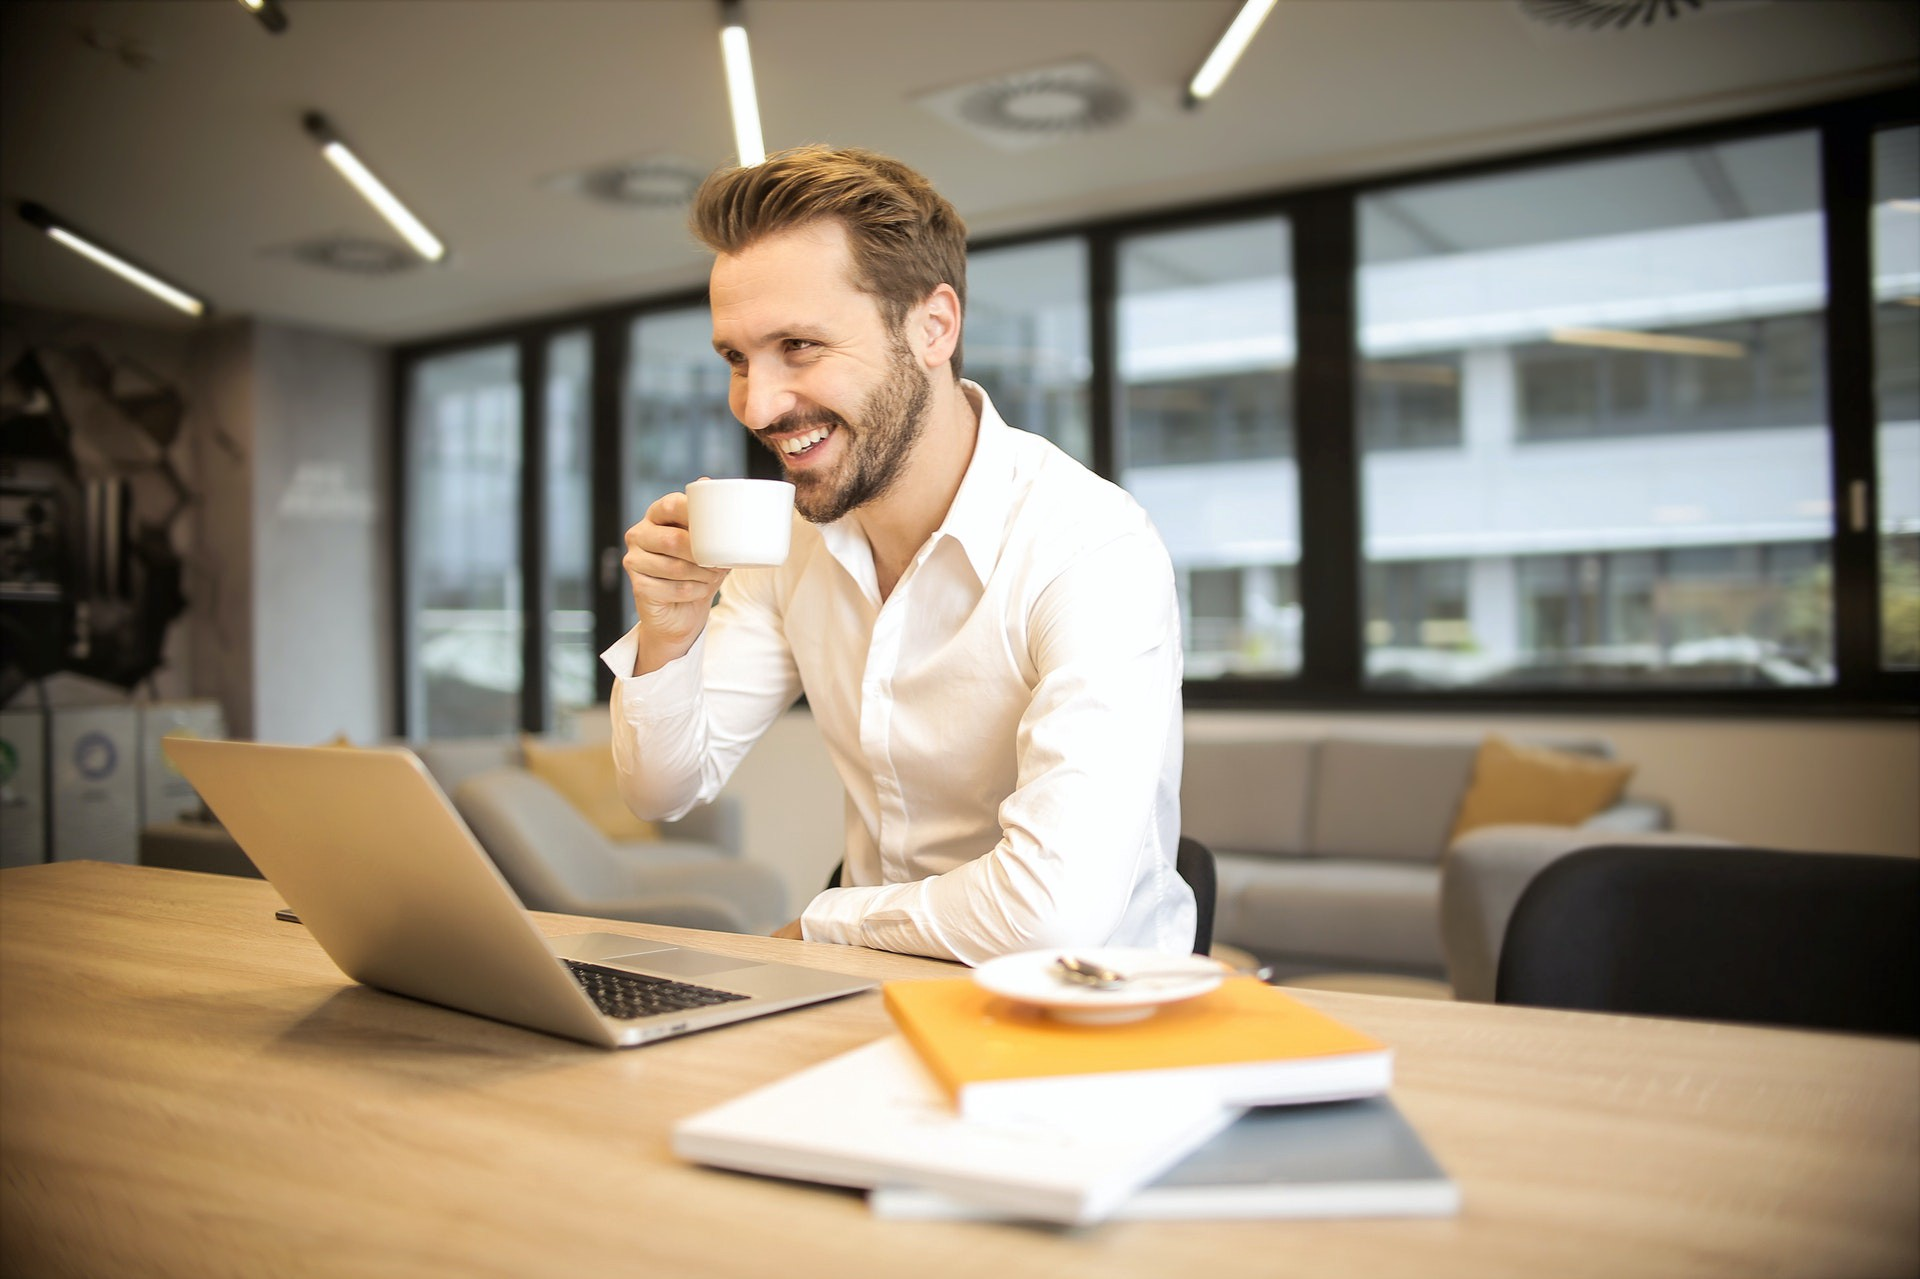 man in front of a computer holding cup of coffee and smiling.